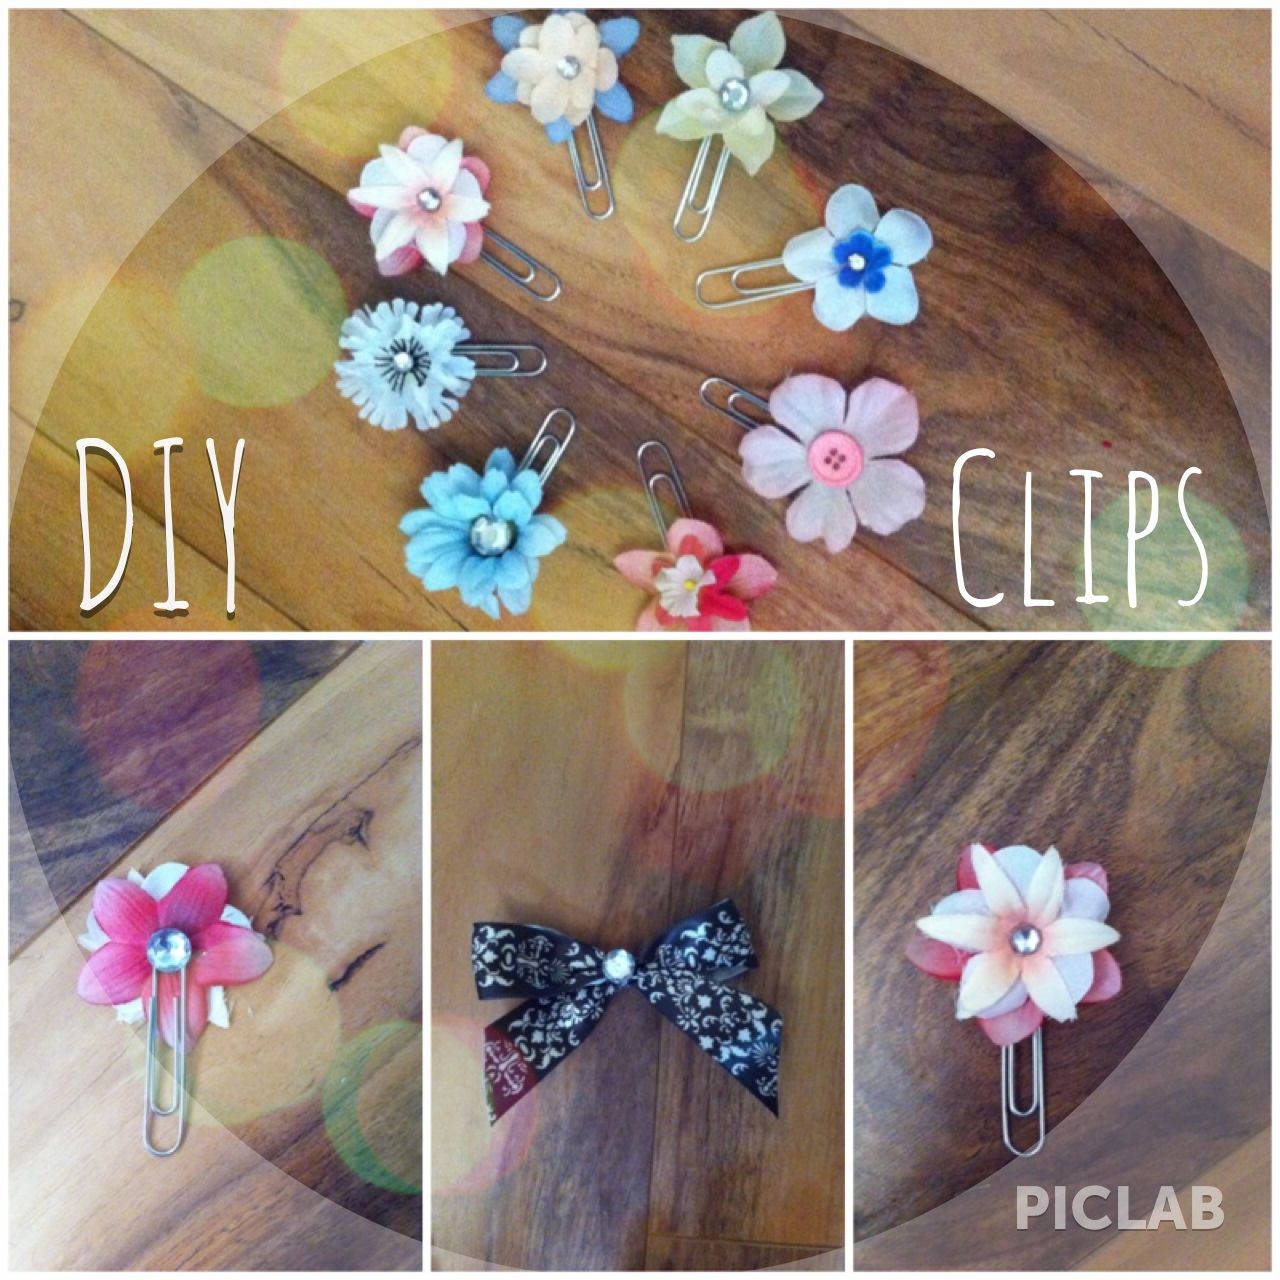 DIY bookmark clips: Hot glue flowers to paper clips and add sequins!